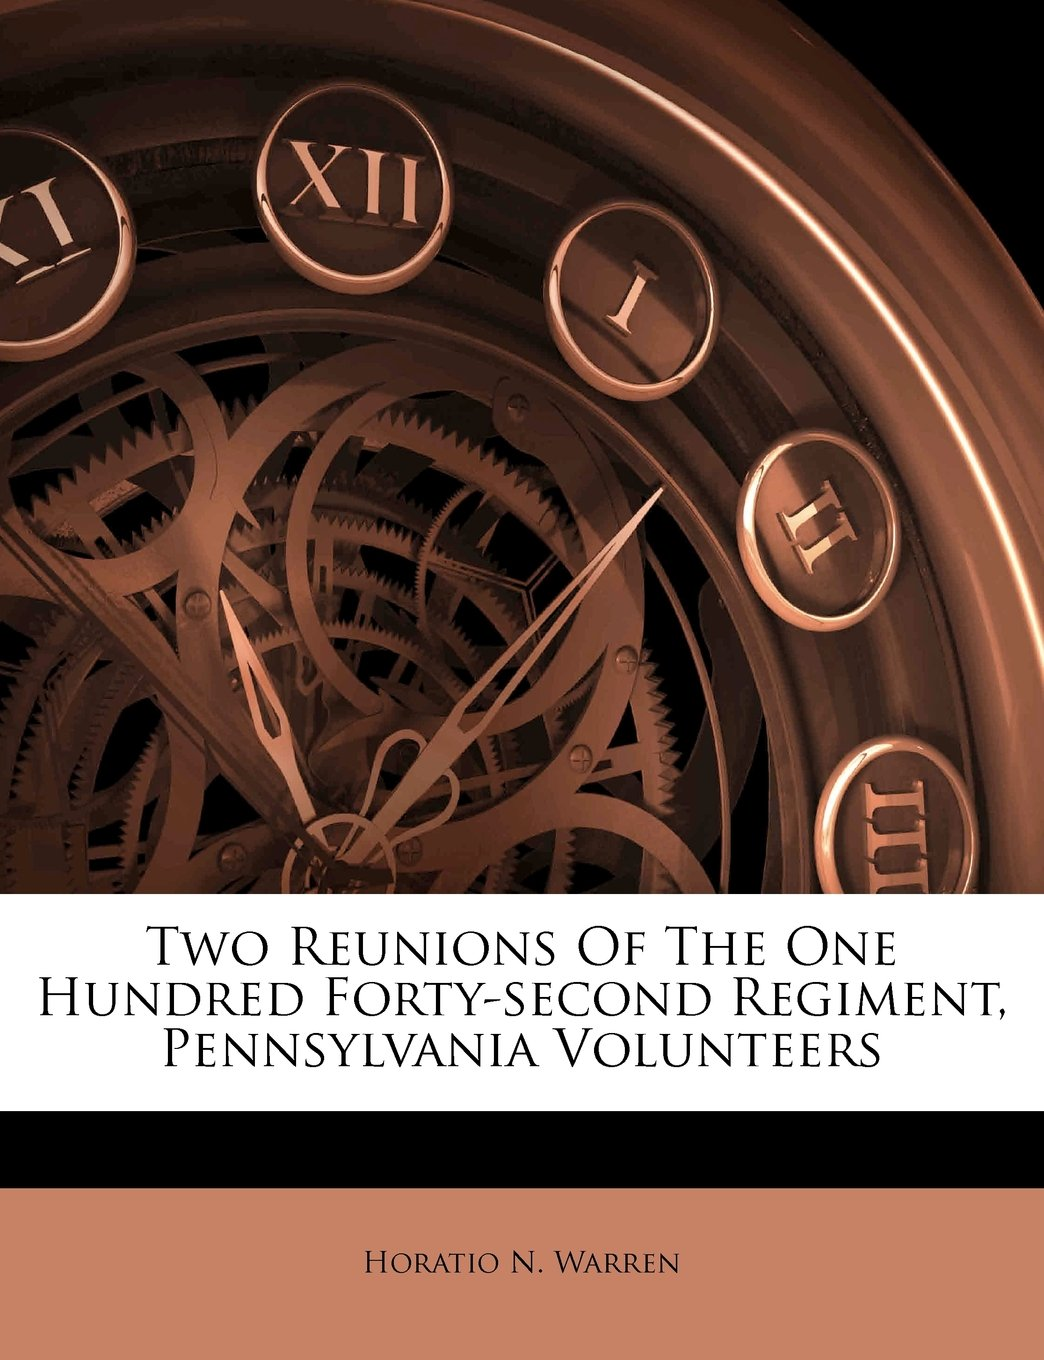 Read Online Two Reunions Of The One Hundred Forty-second Regiment, Pennsylvania Volunteers PDF